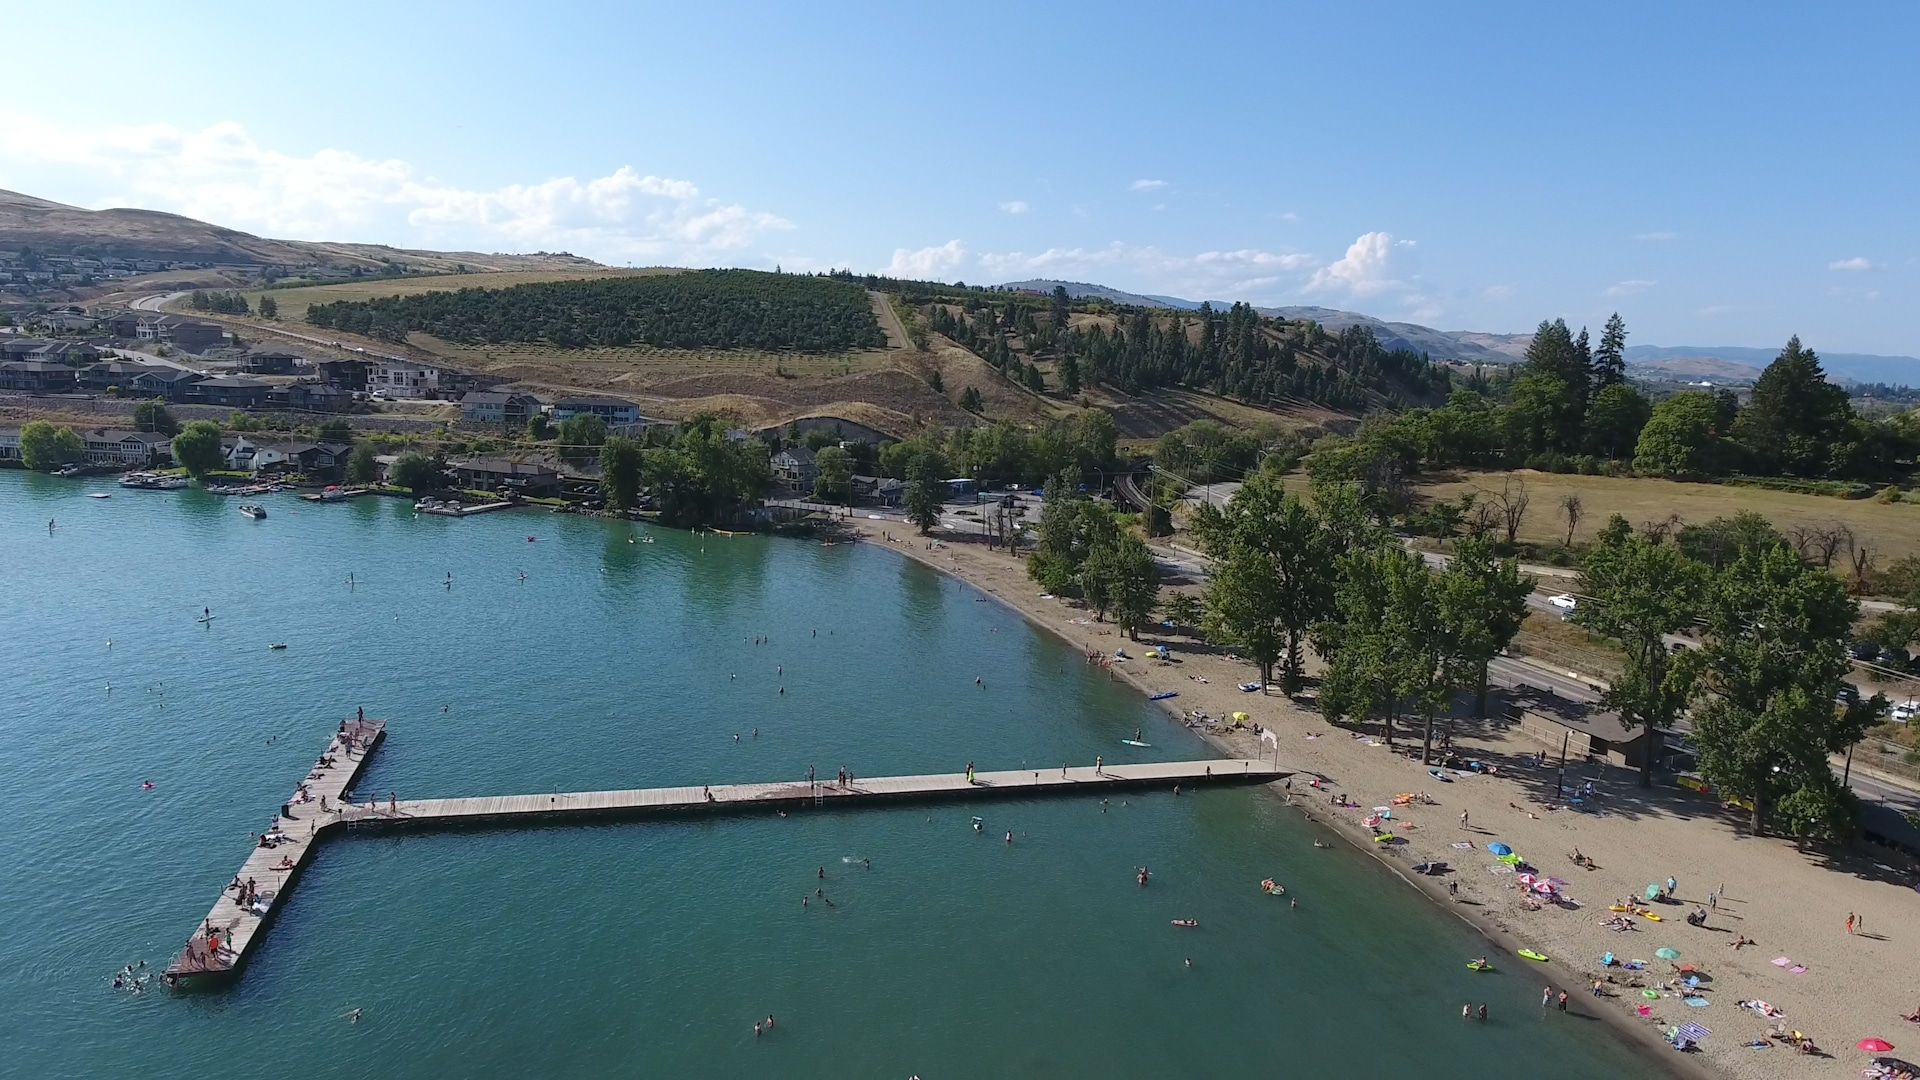 Kal Beach on Kalamalka Lake in Vernon BC - Kal Pier facing west